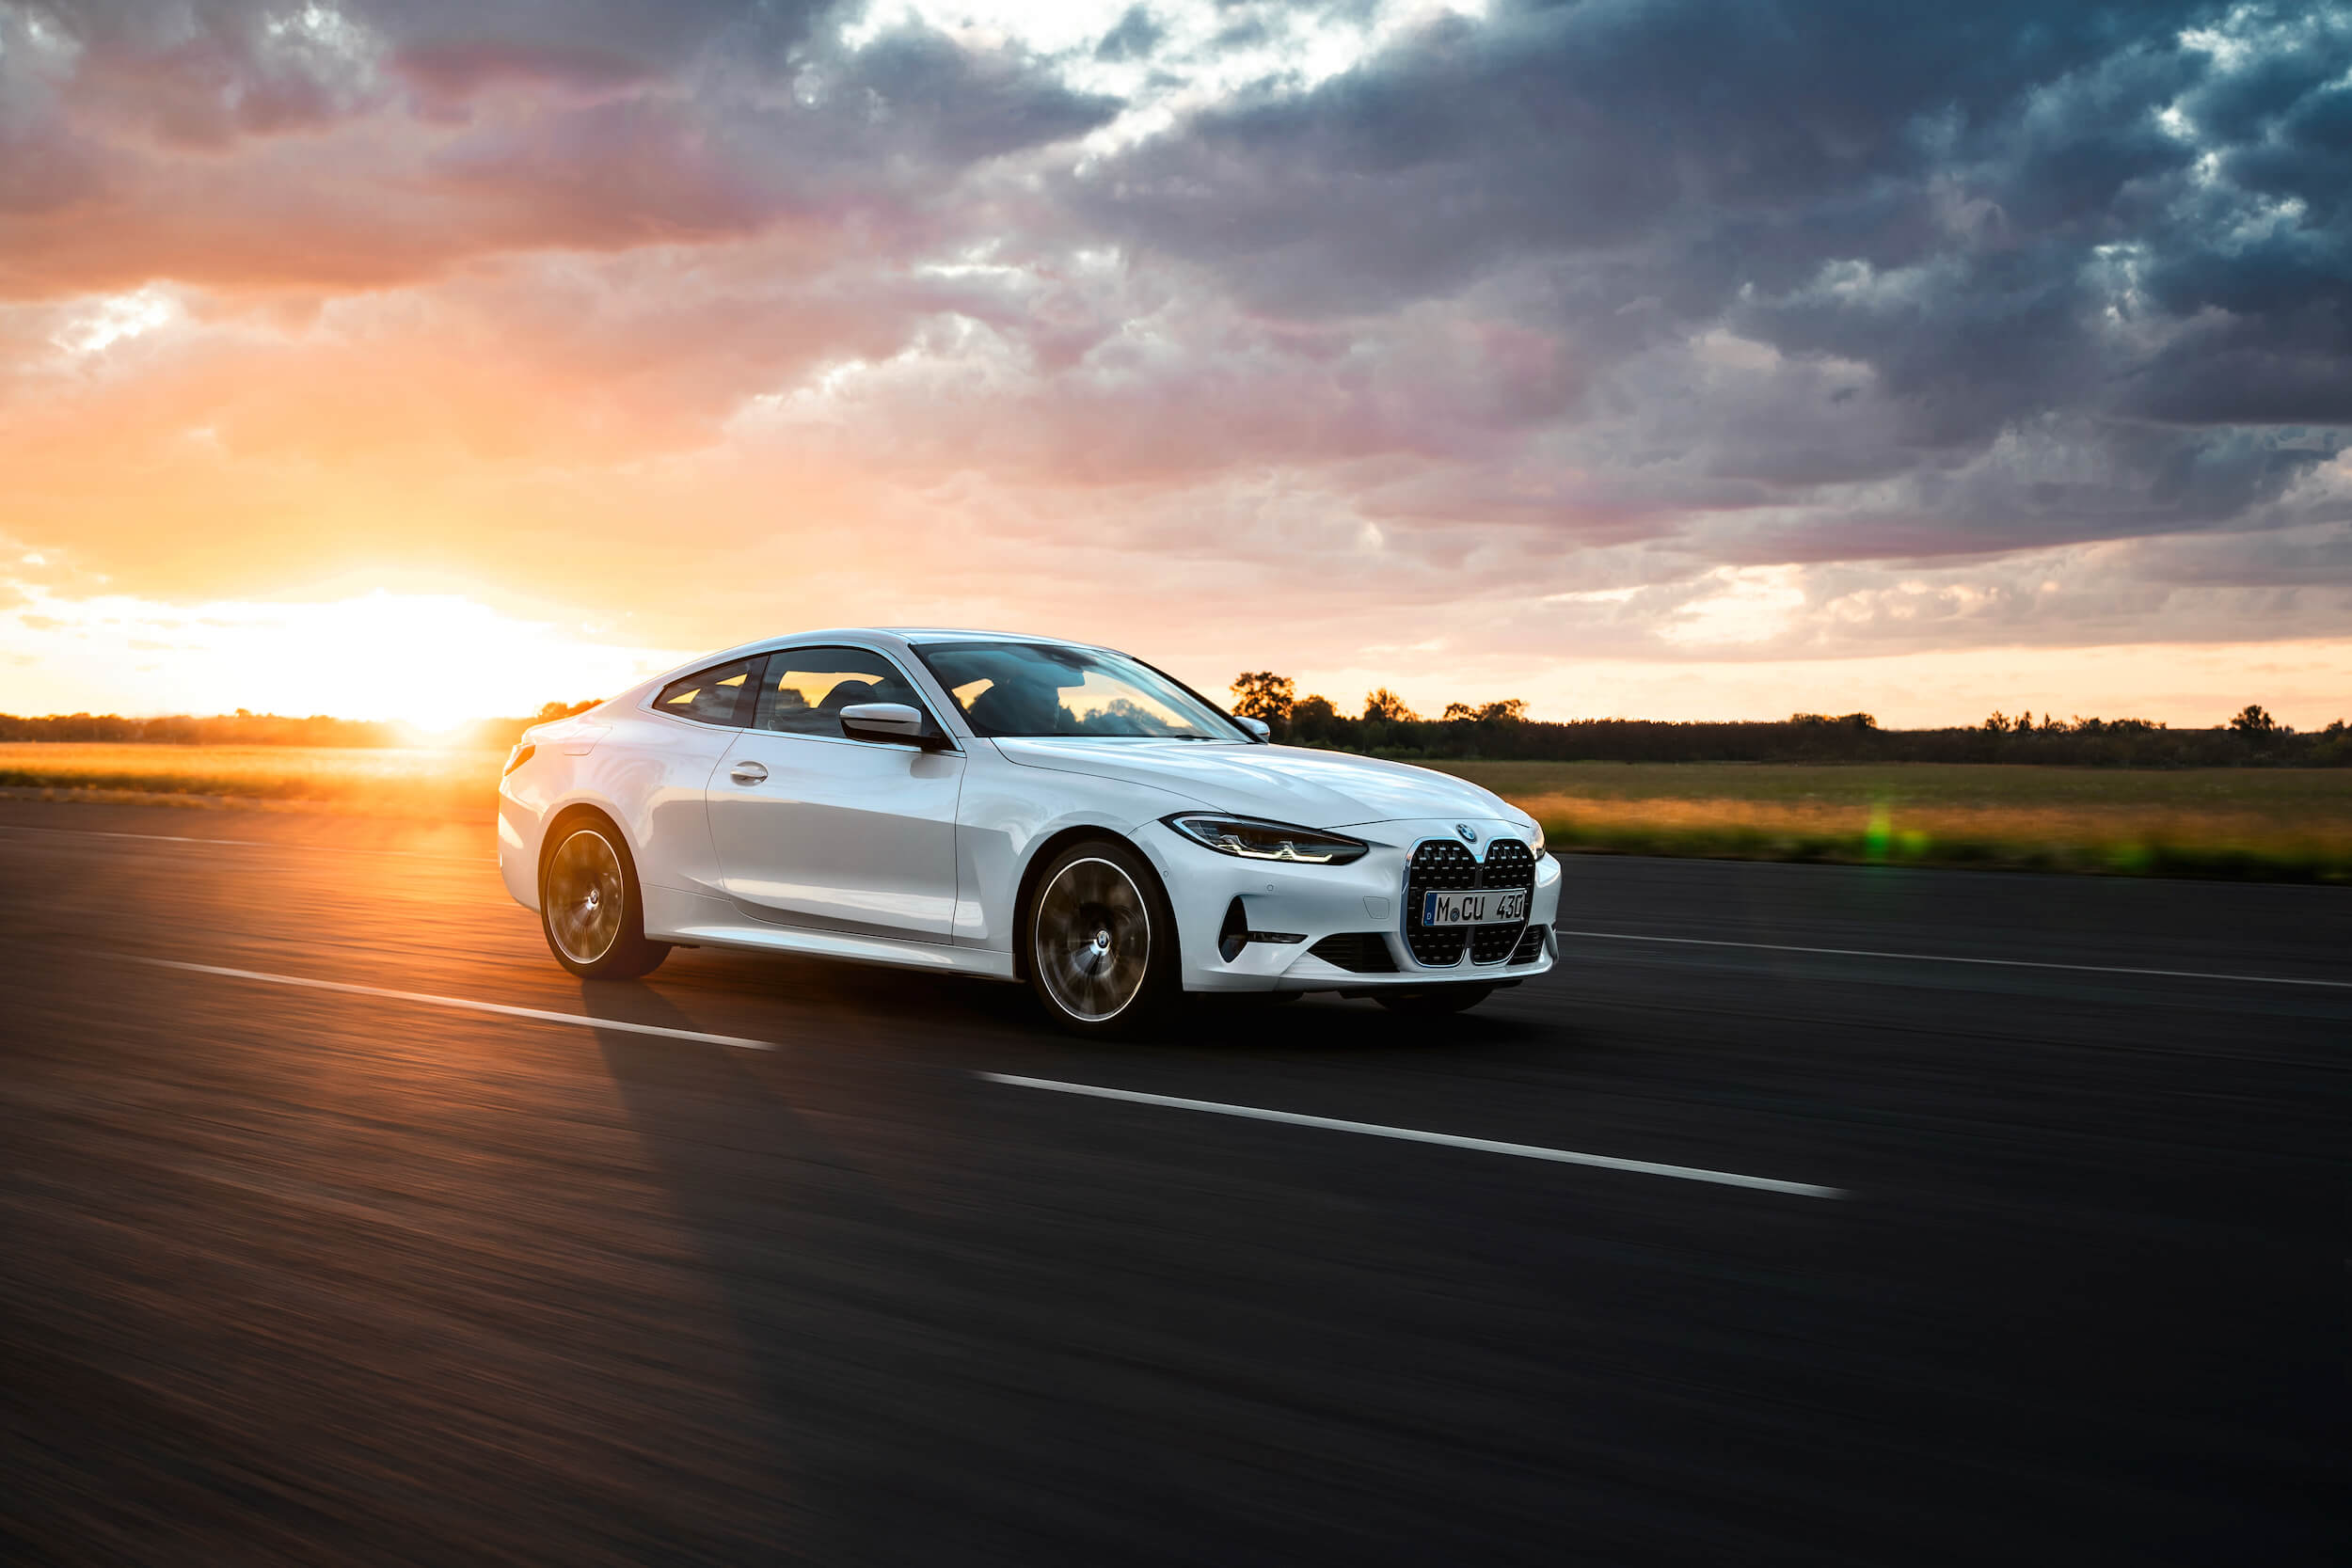 NEW BMW 4 SERIES: Munich's latest coupe gets a tough grilling